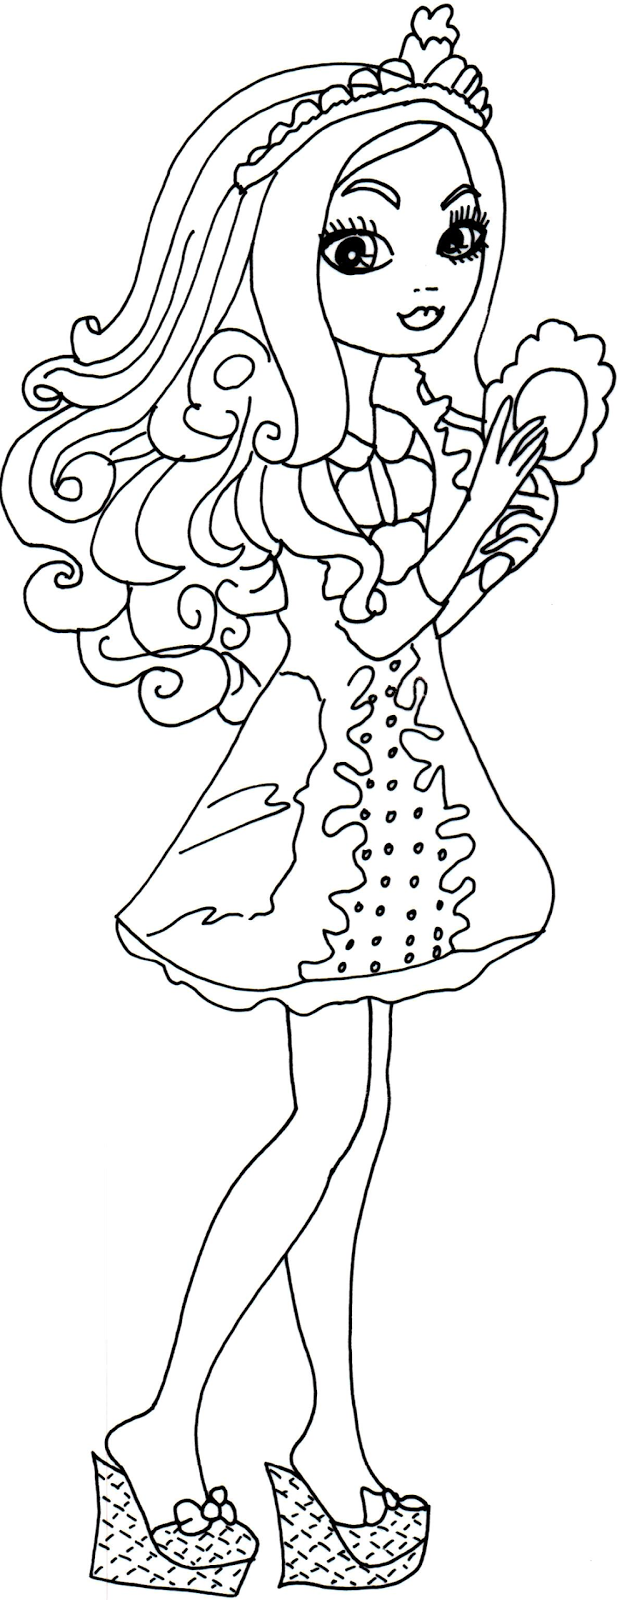 627x1600 Free Ever After High Coloring Pages January